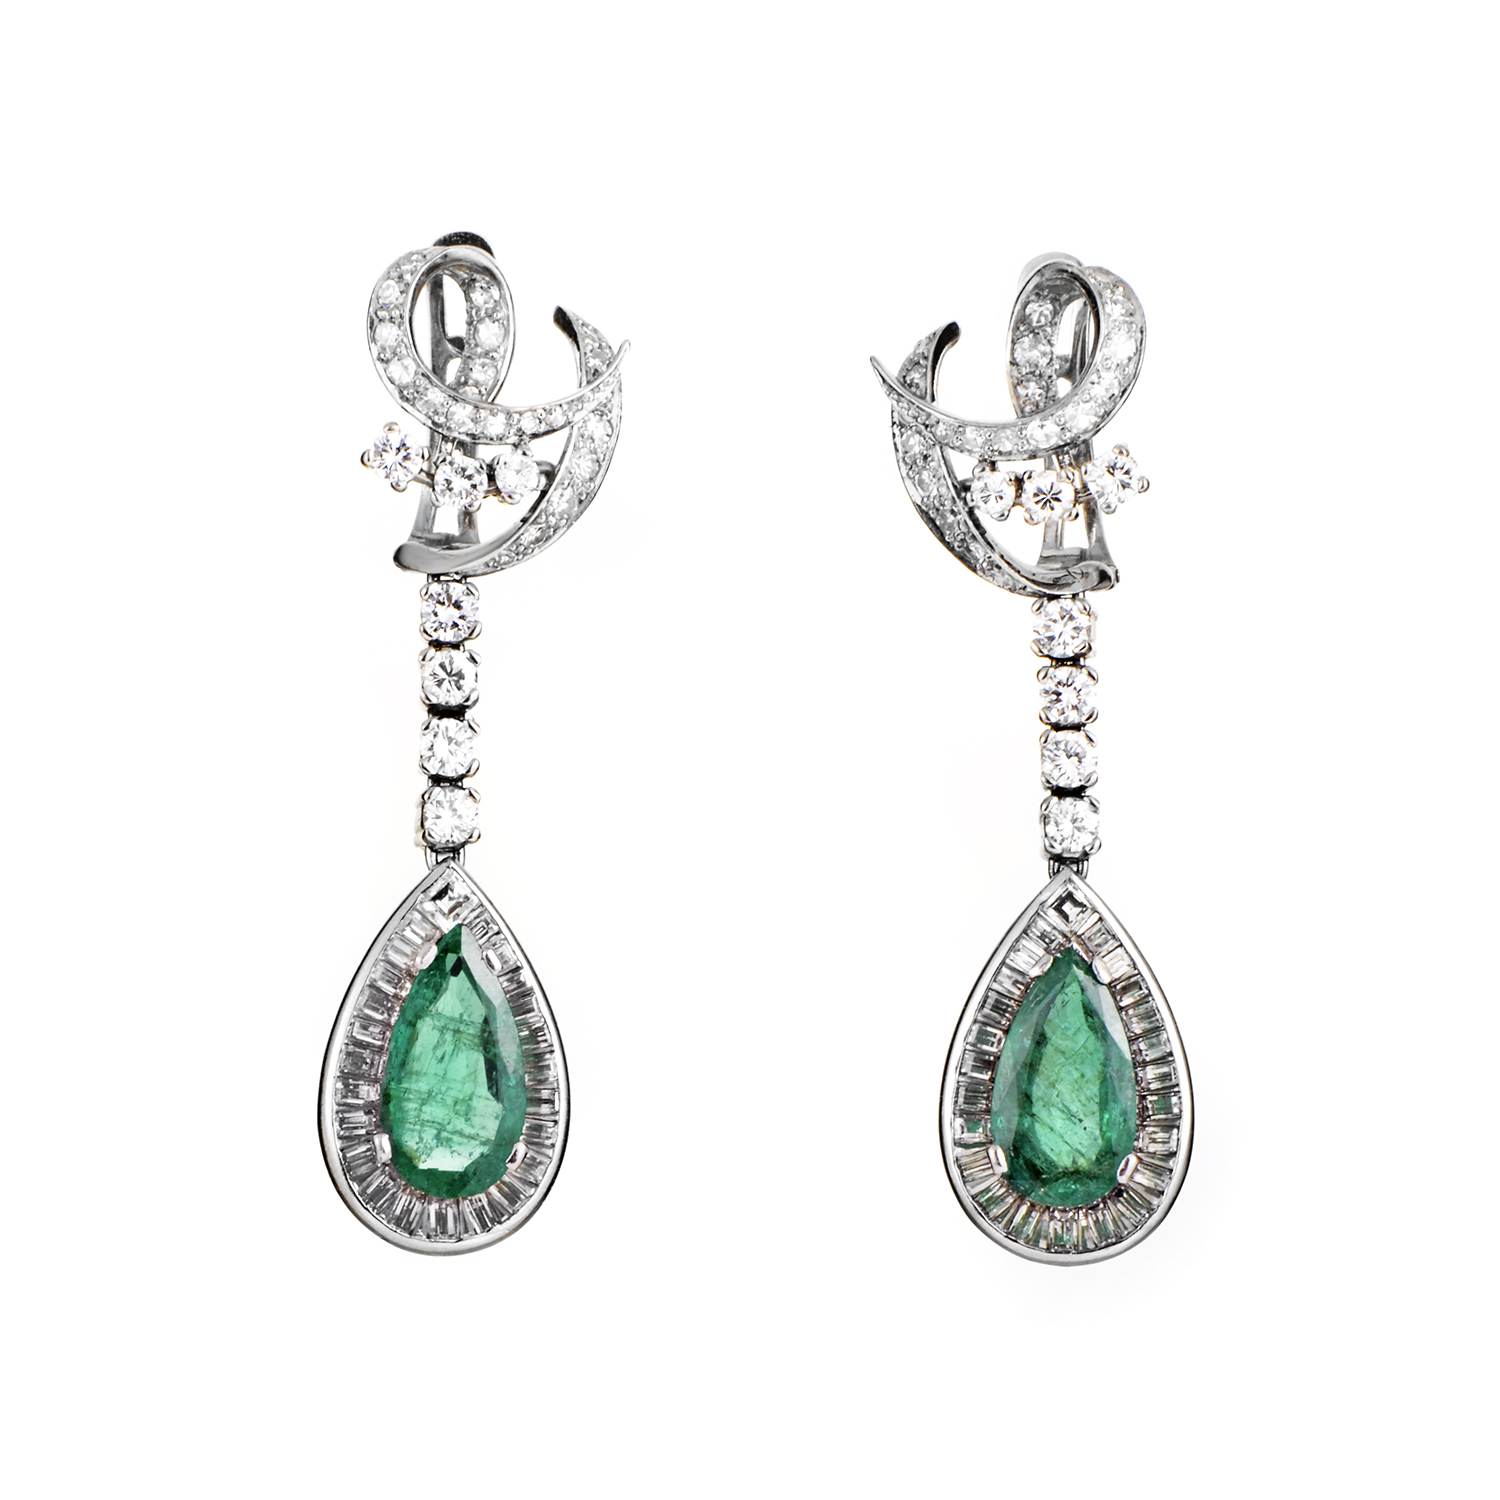 Women's Antique Platinum Diamond and Emerald Dangle Earrings